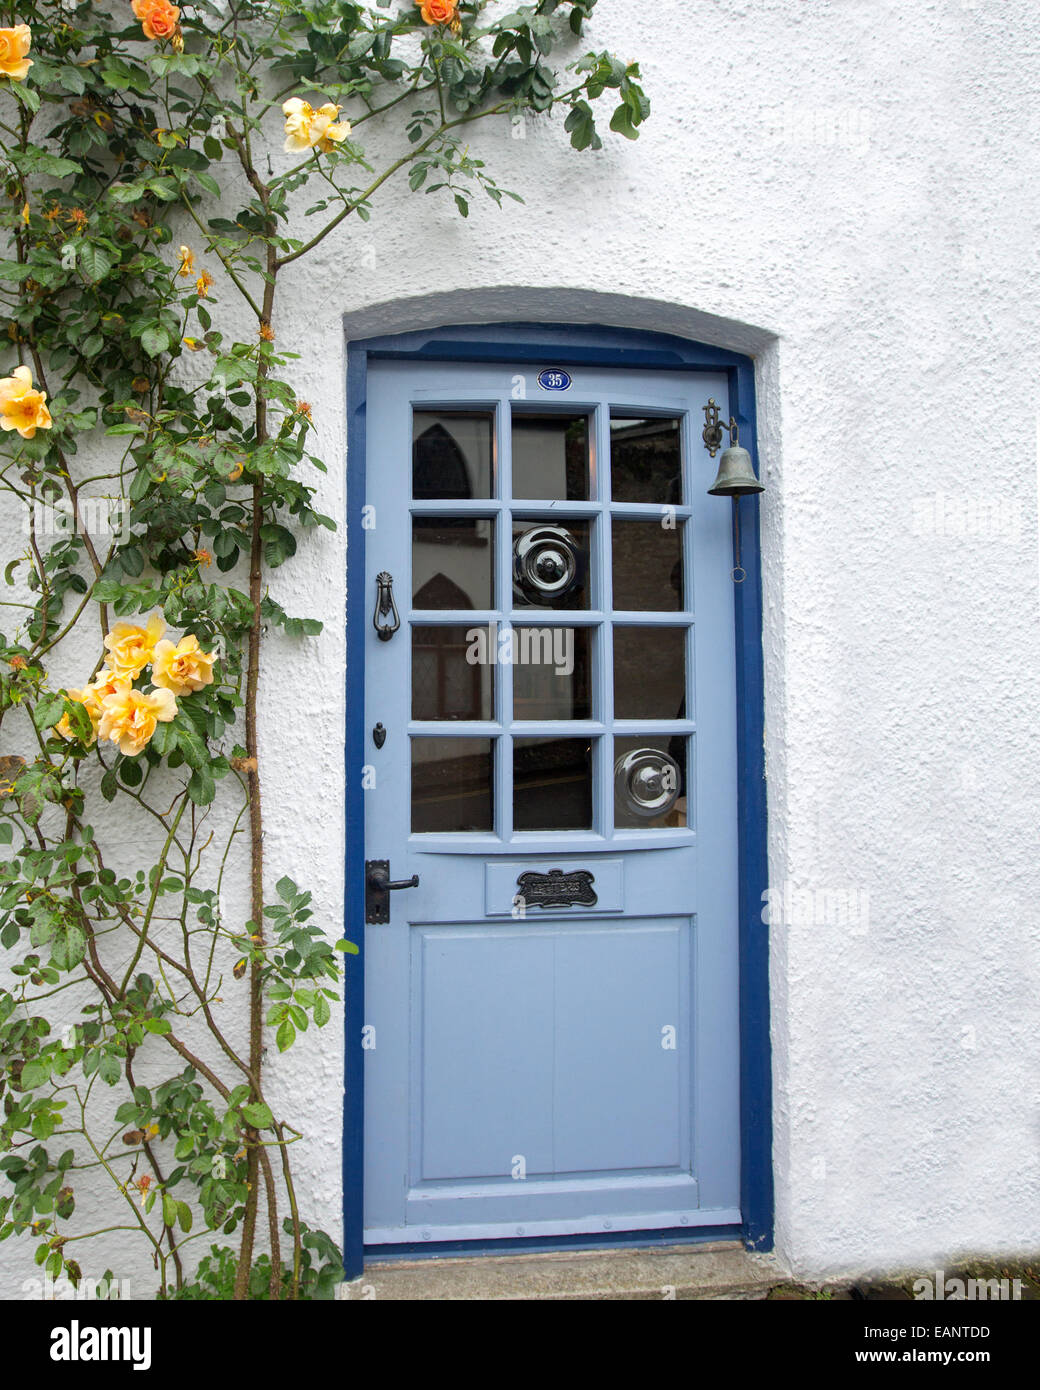 Pale blue cottage door with gleaming glass surrounded by white walls u0026 climbing roses with yellow flowers in Welsh village & Pale blue cottage door with gleaming glass surrounded by white walls ...